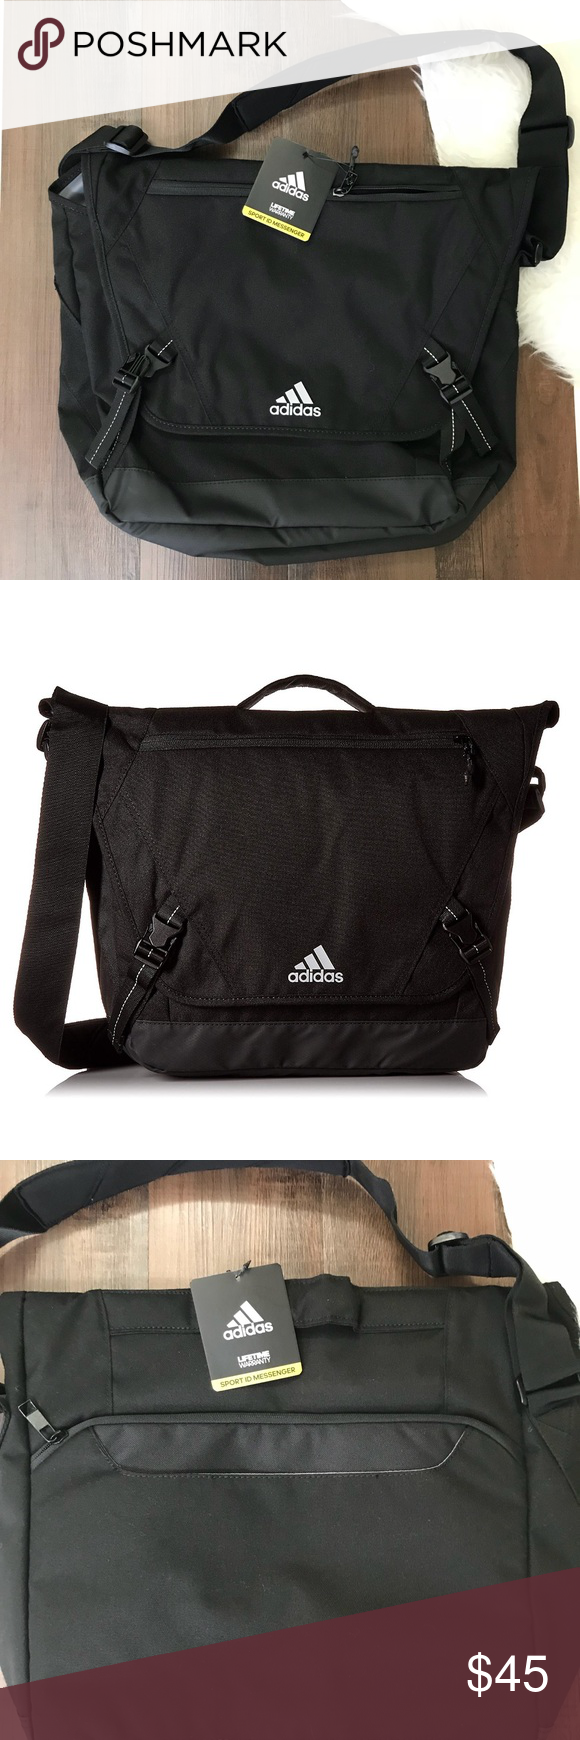 Adidas Sport ID Messenger Bag 100% Polyester 5.5 x 14.5 x 12.5 inches  Lifetime Warranty 976d1918b5690